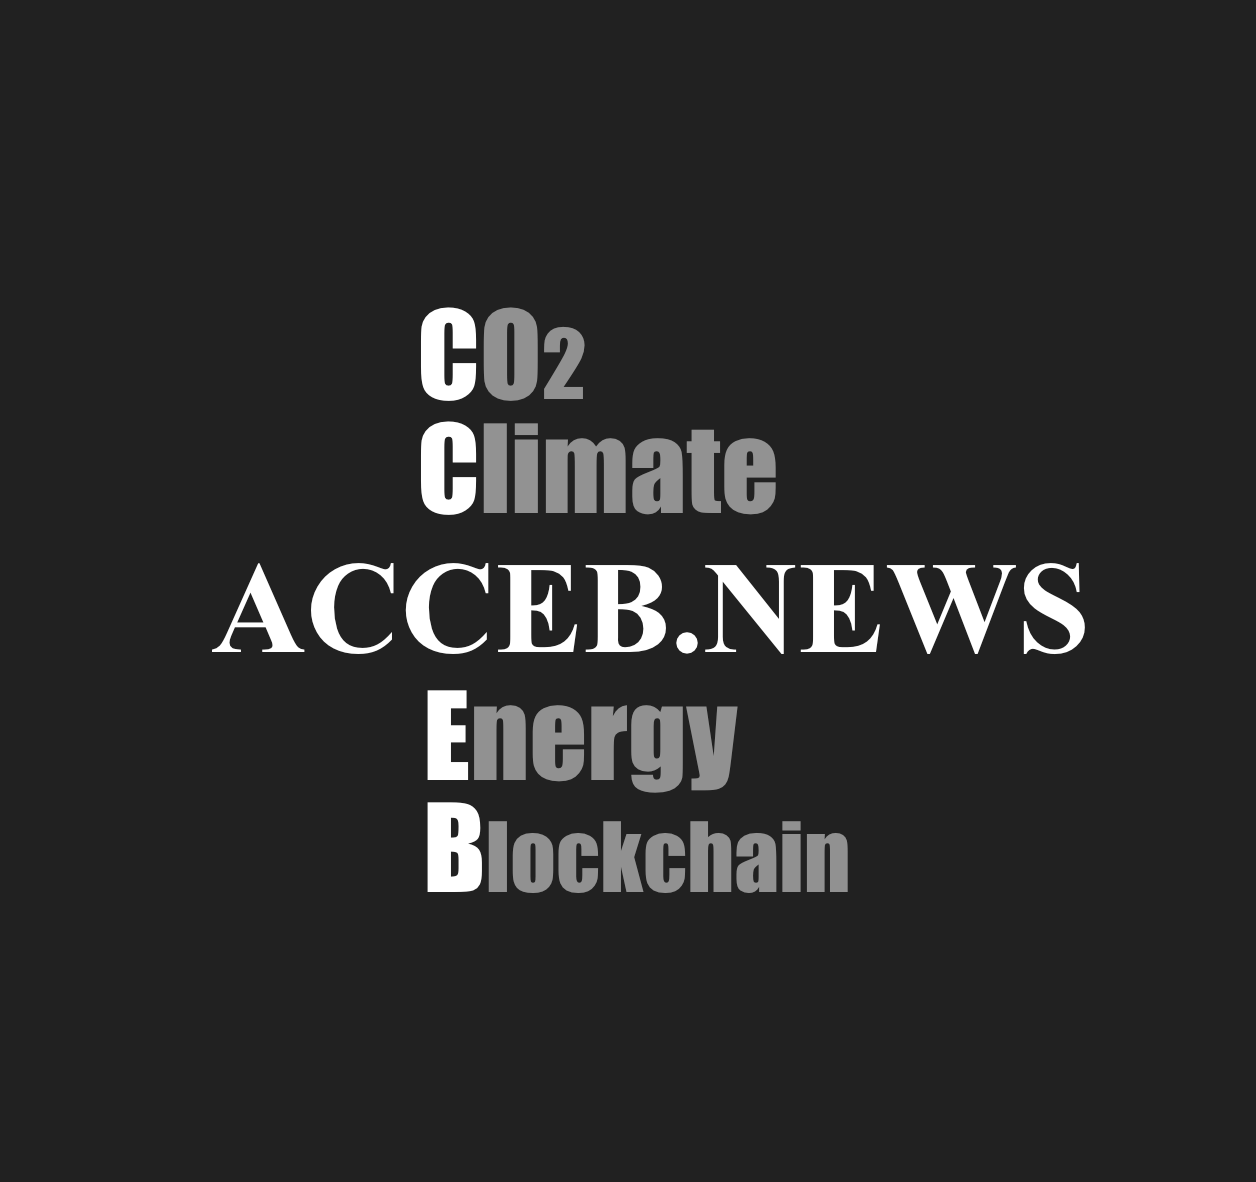 Archive on Climate, Carbon, Energy and Blockchain